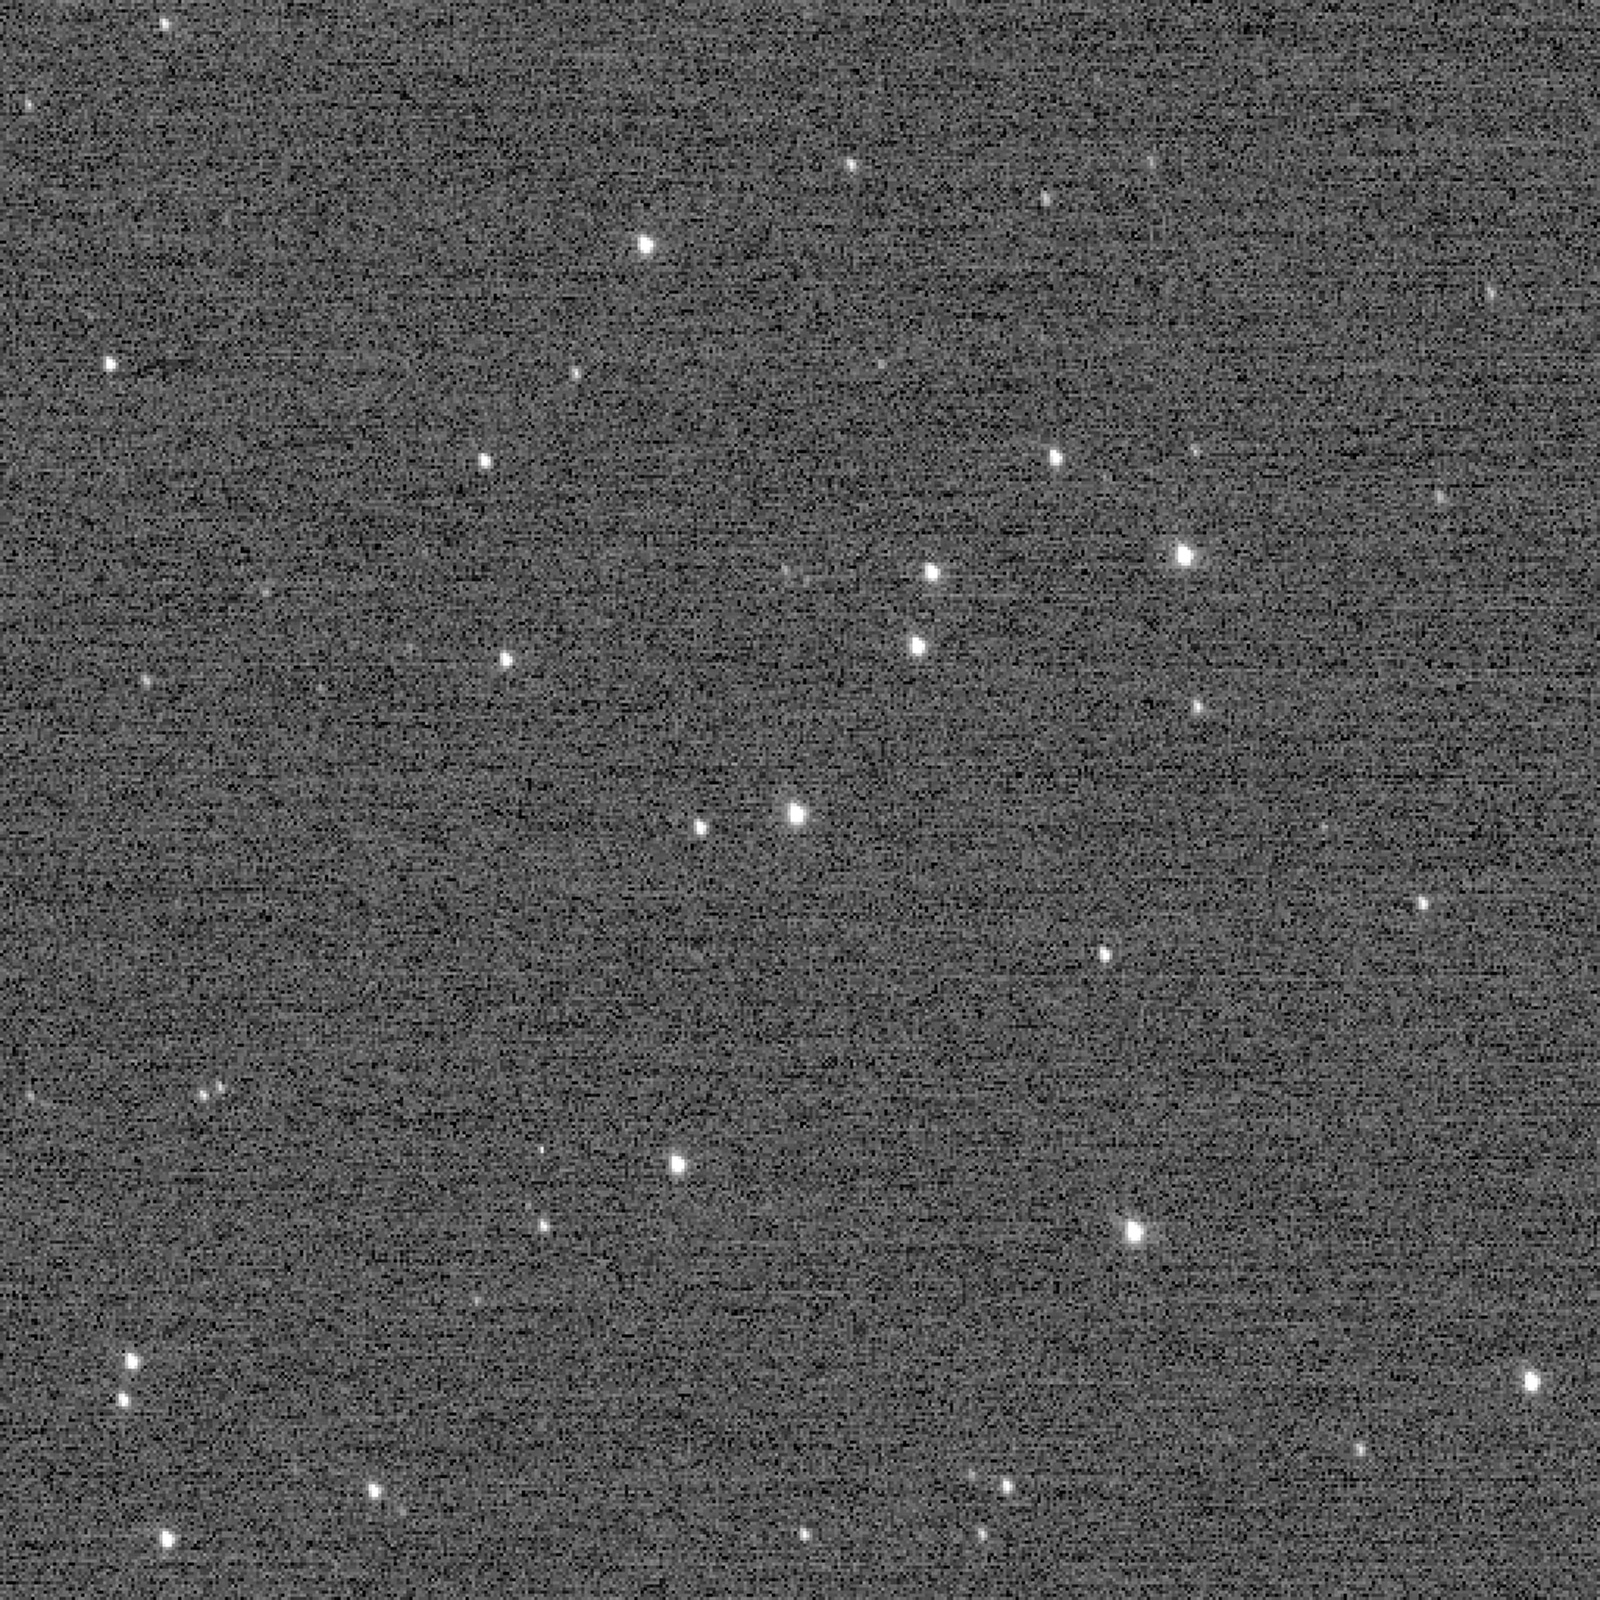 Wishing Well star cluster captured by New Horizons